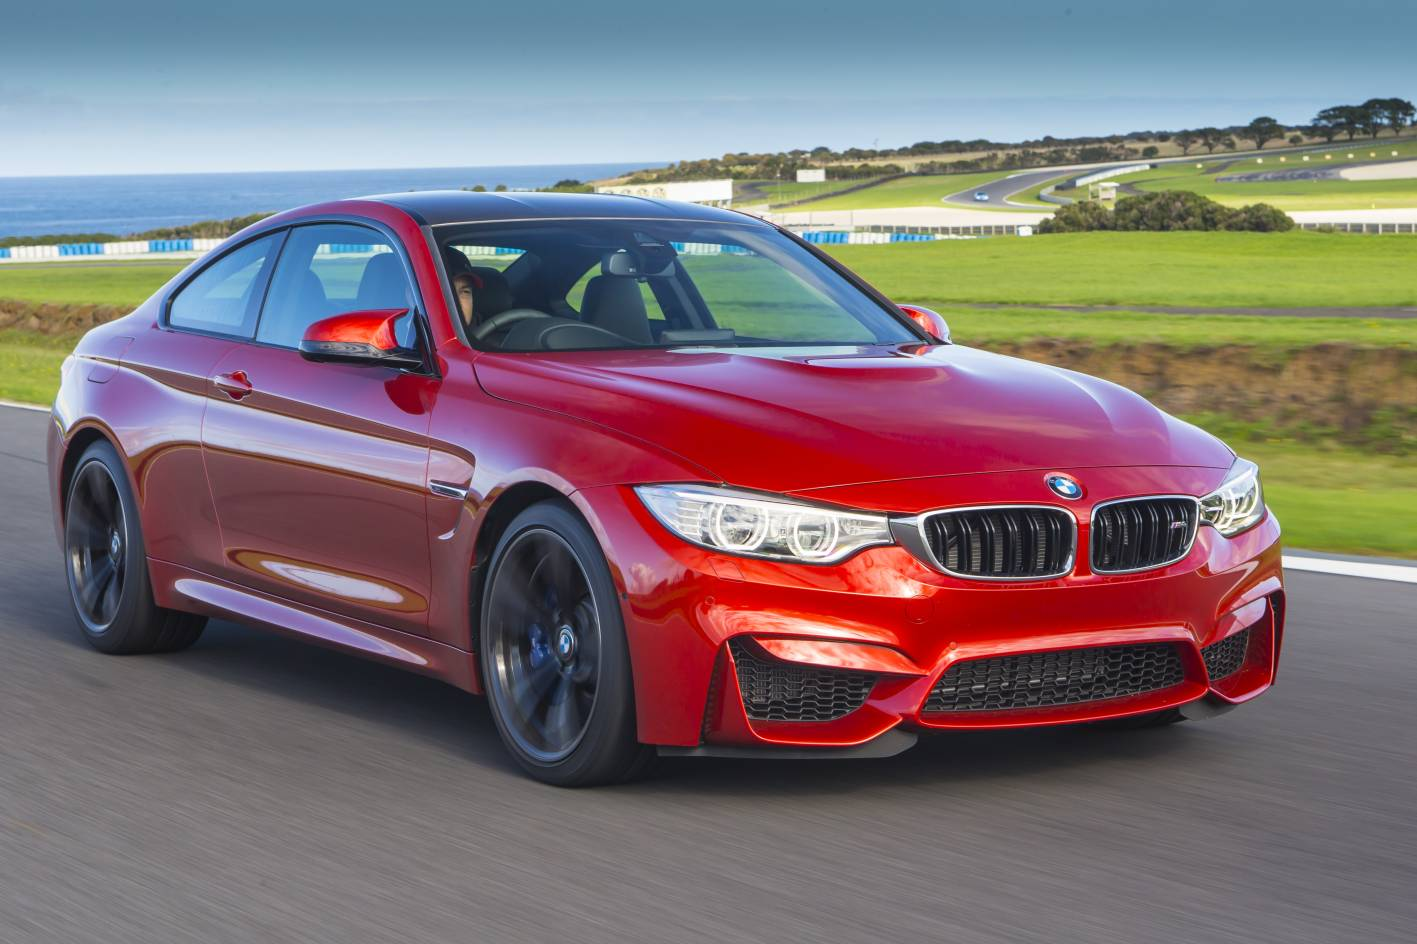 bmw cars news 2014 m3 sedan and m4 coupe pricing announced. Black Bedroom Furniture Sets. Home Design Ideas